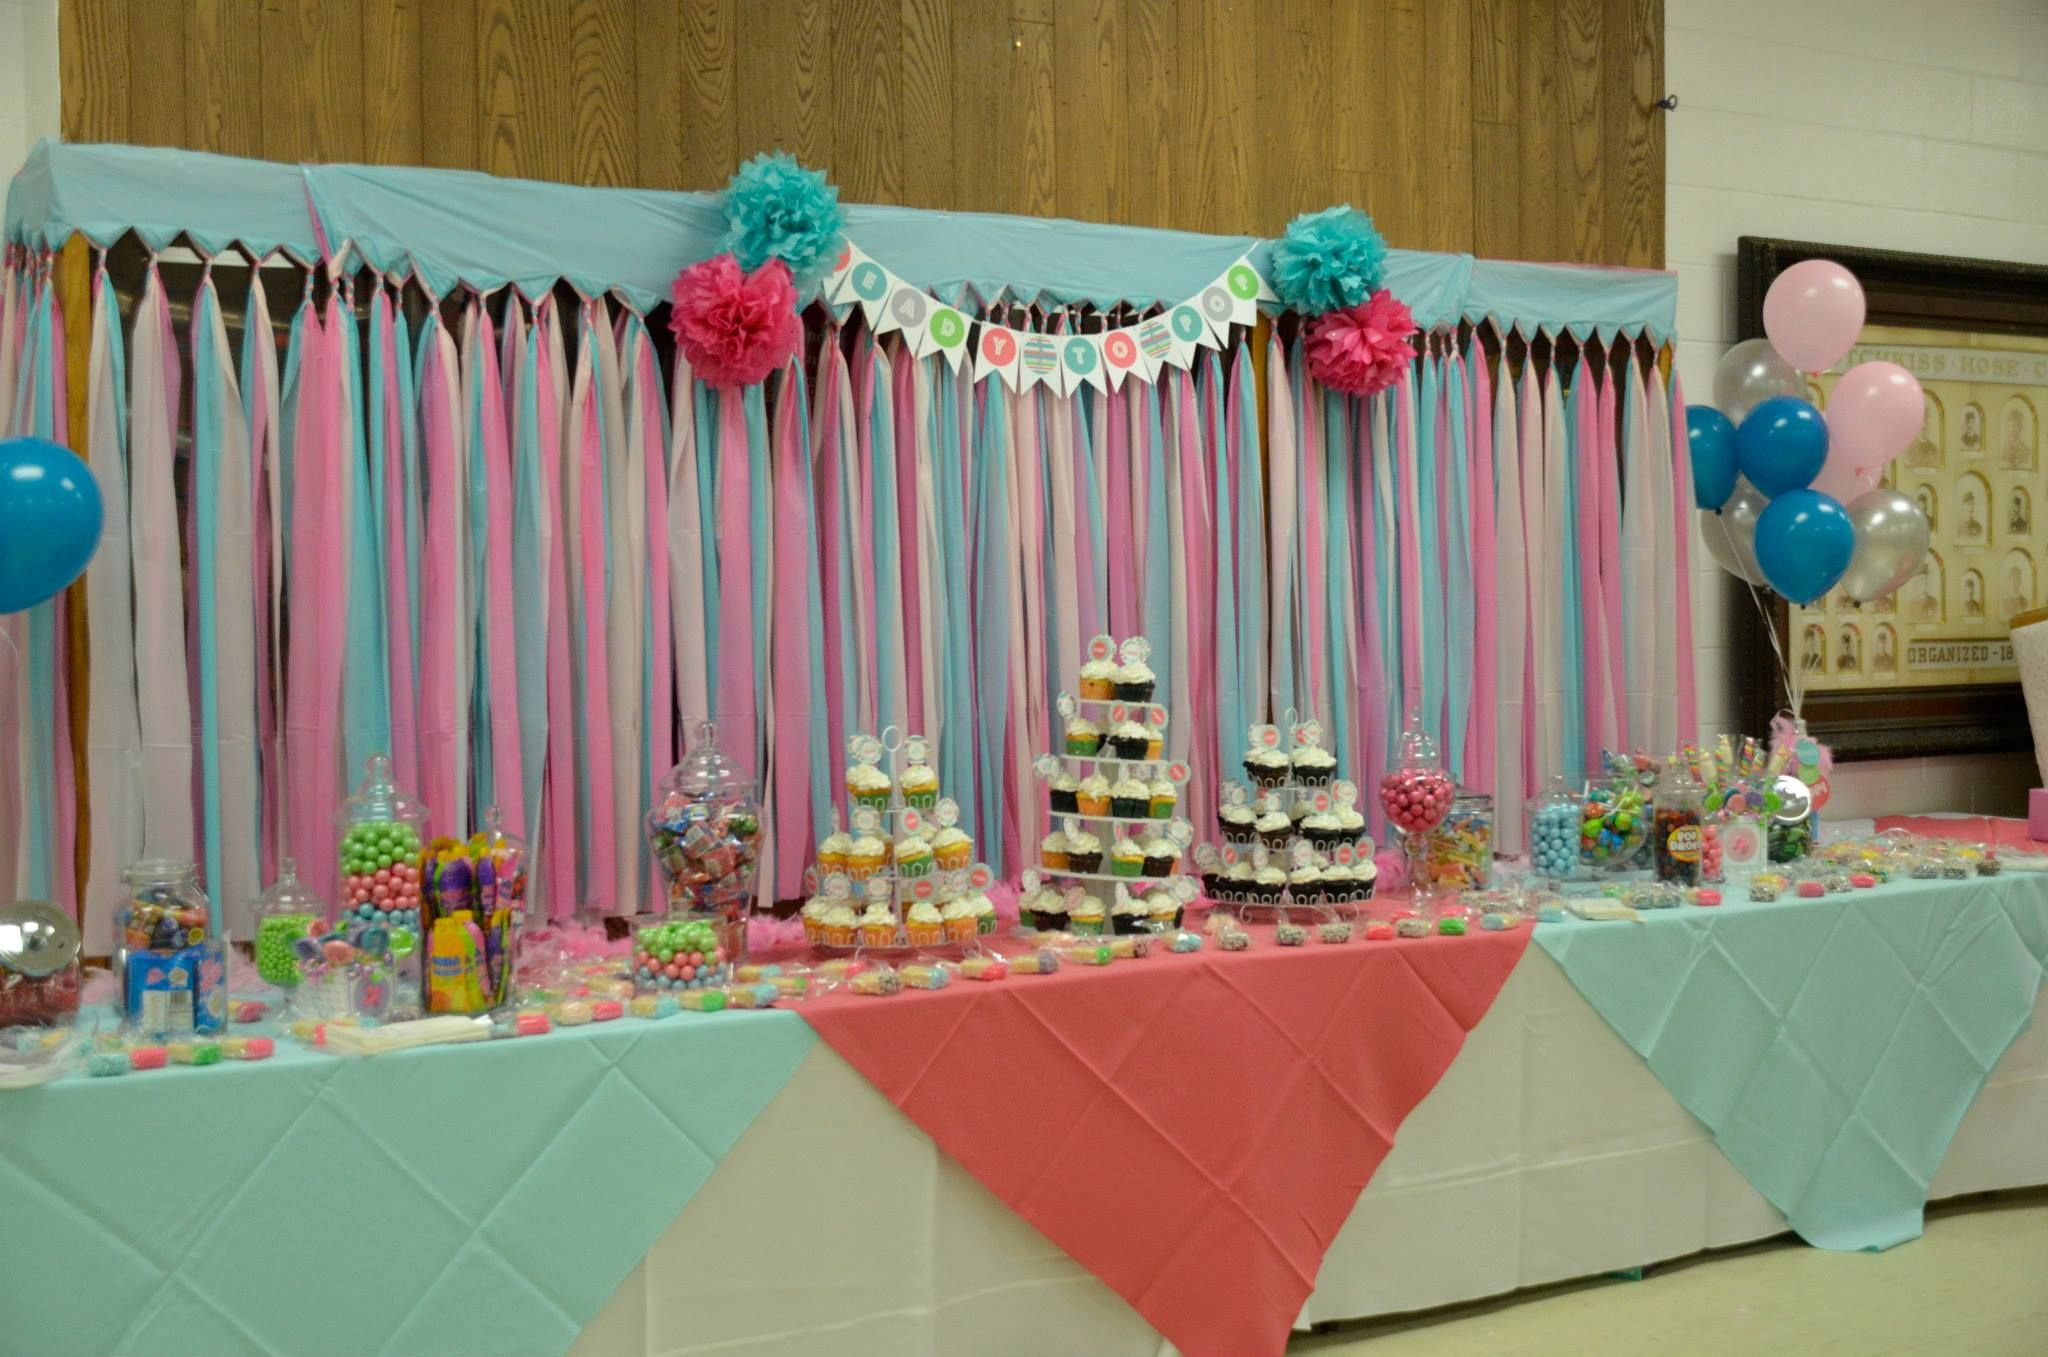 Pin By Anna Sweety On Party Ideas Diy Baby Shower Decorations Plastic Tablecloth Backdrop Tablecloth Backdrop